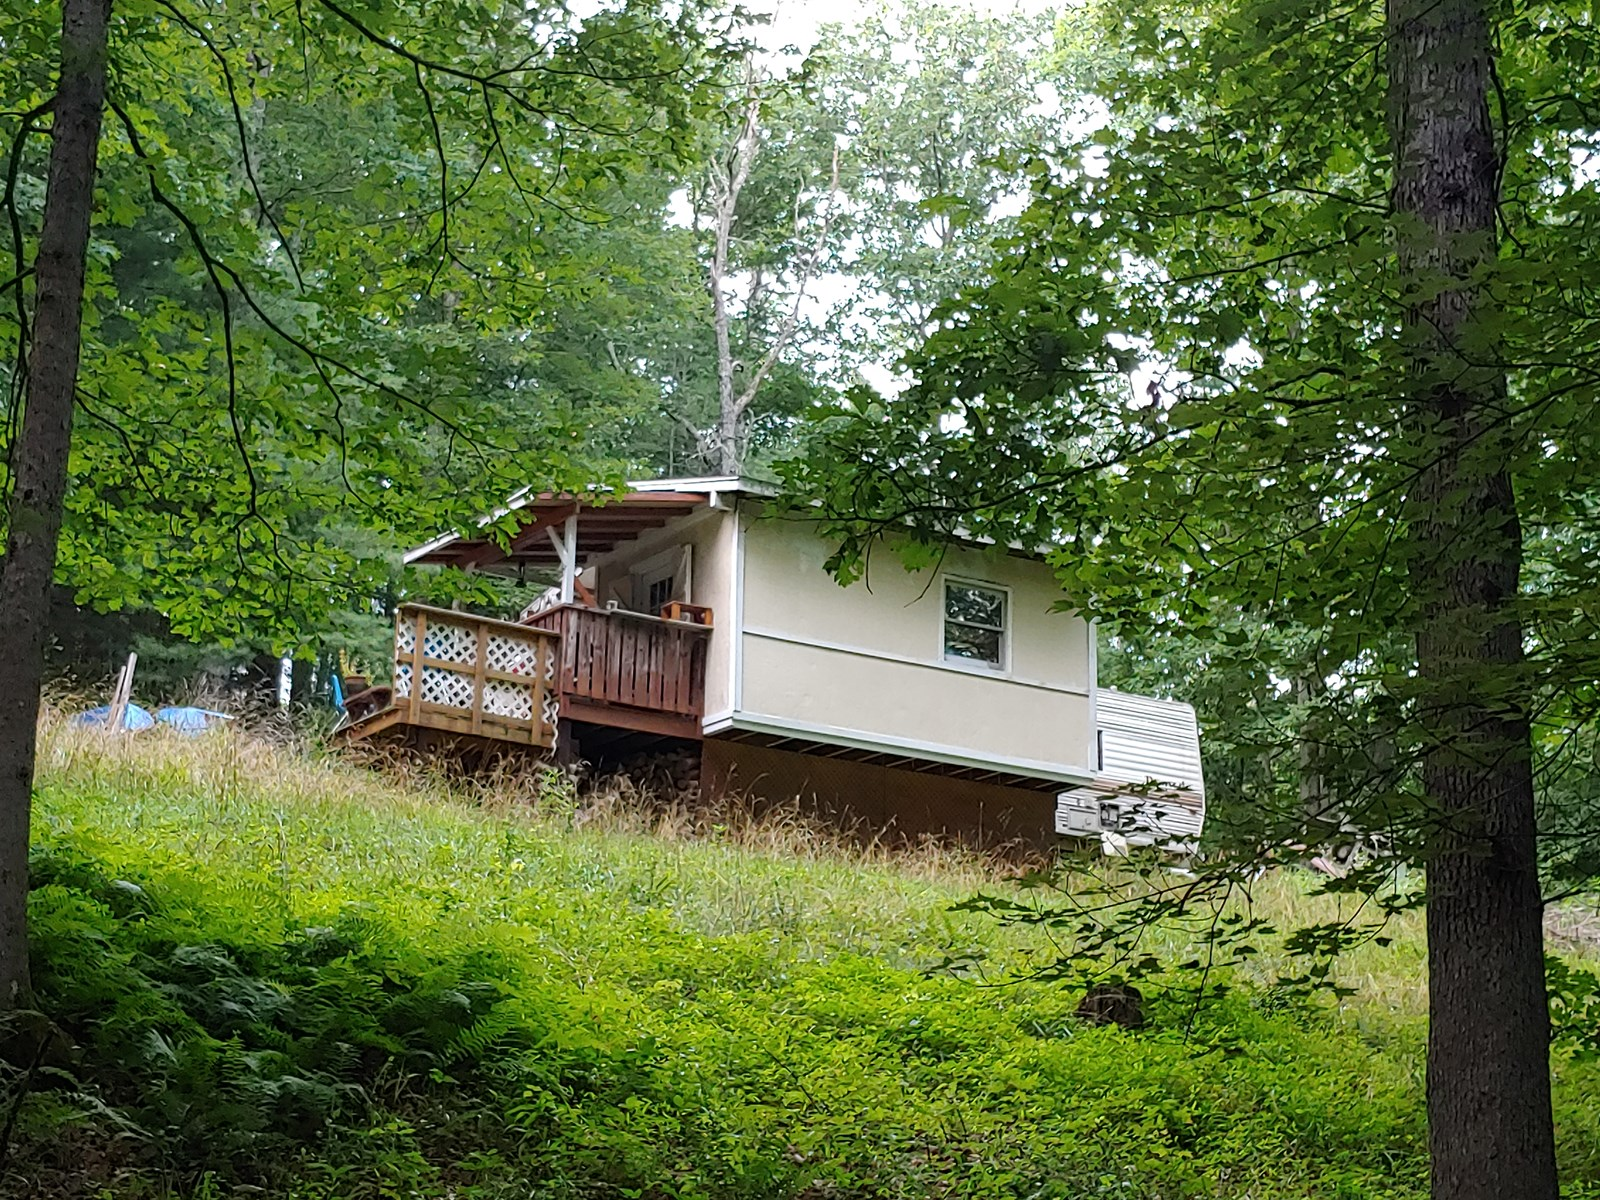 Secluded Mountain Property for Sale in Wythe County VA!